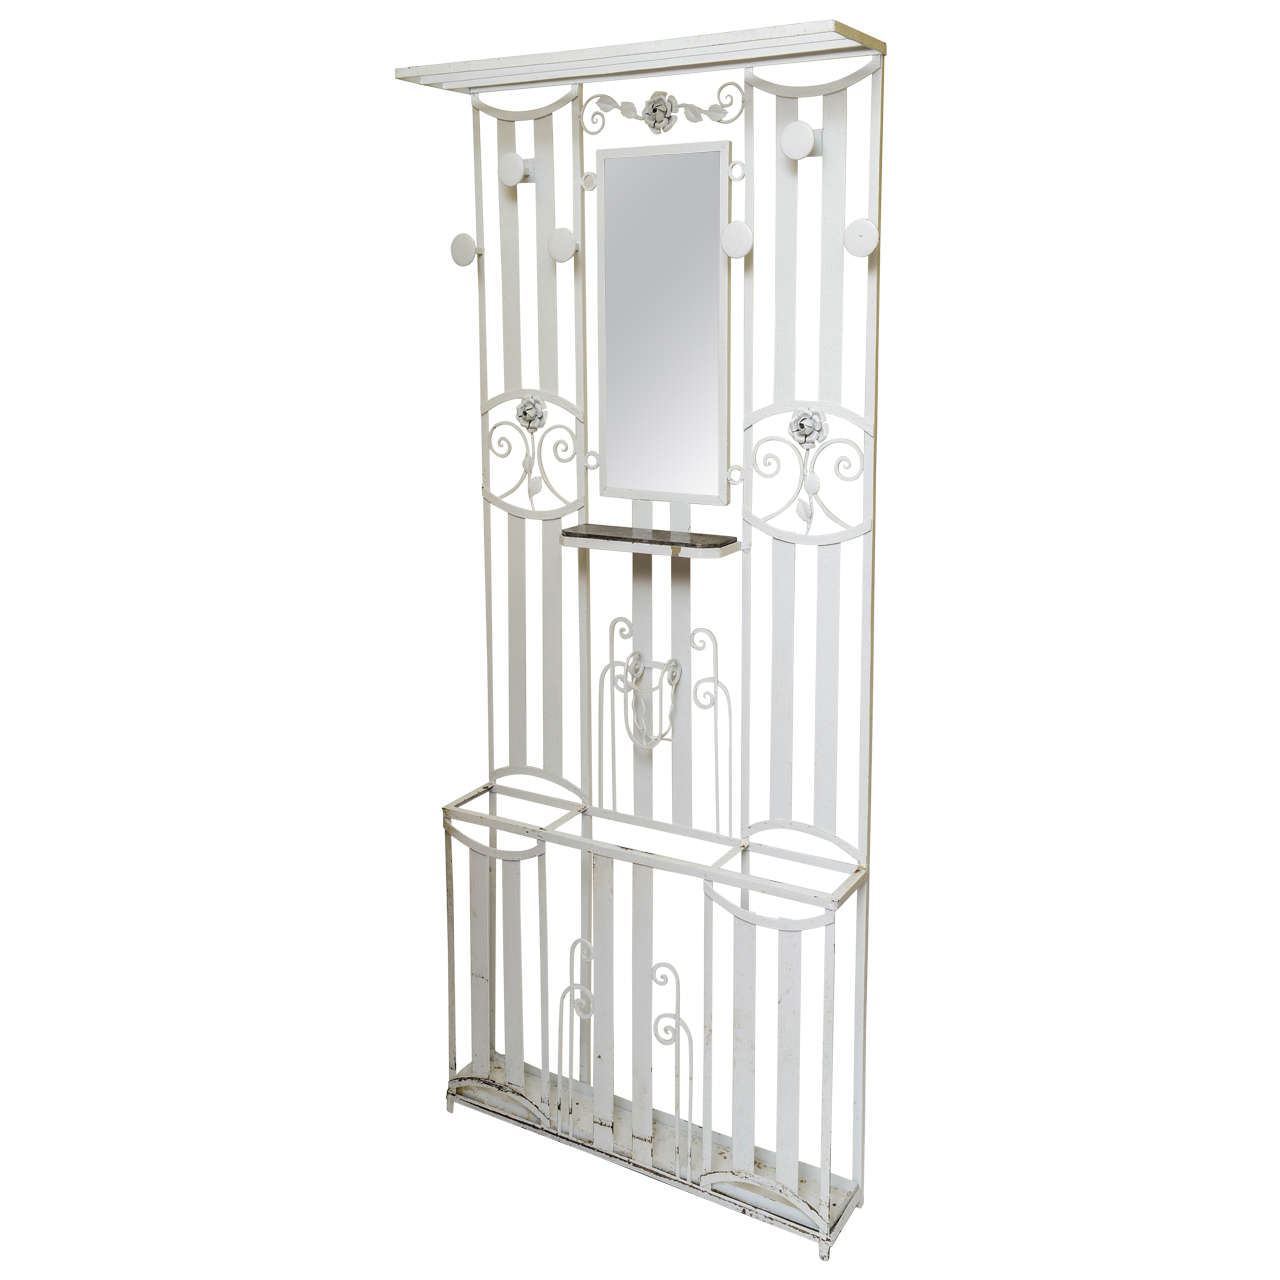 Art Deco French Iron Entry Hall Stand or Tree Painted in White